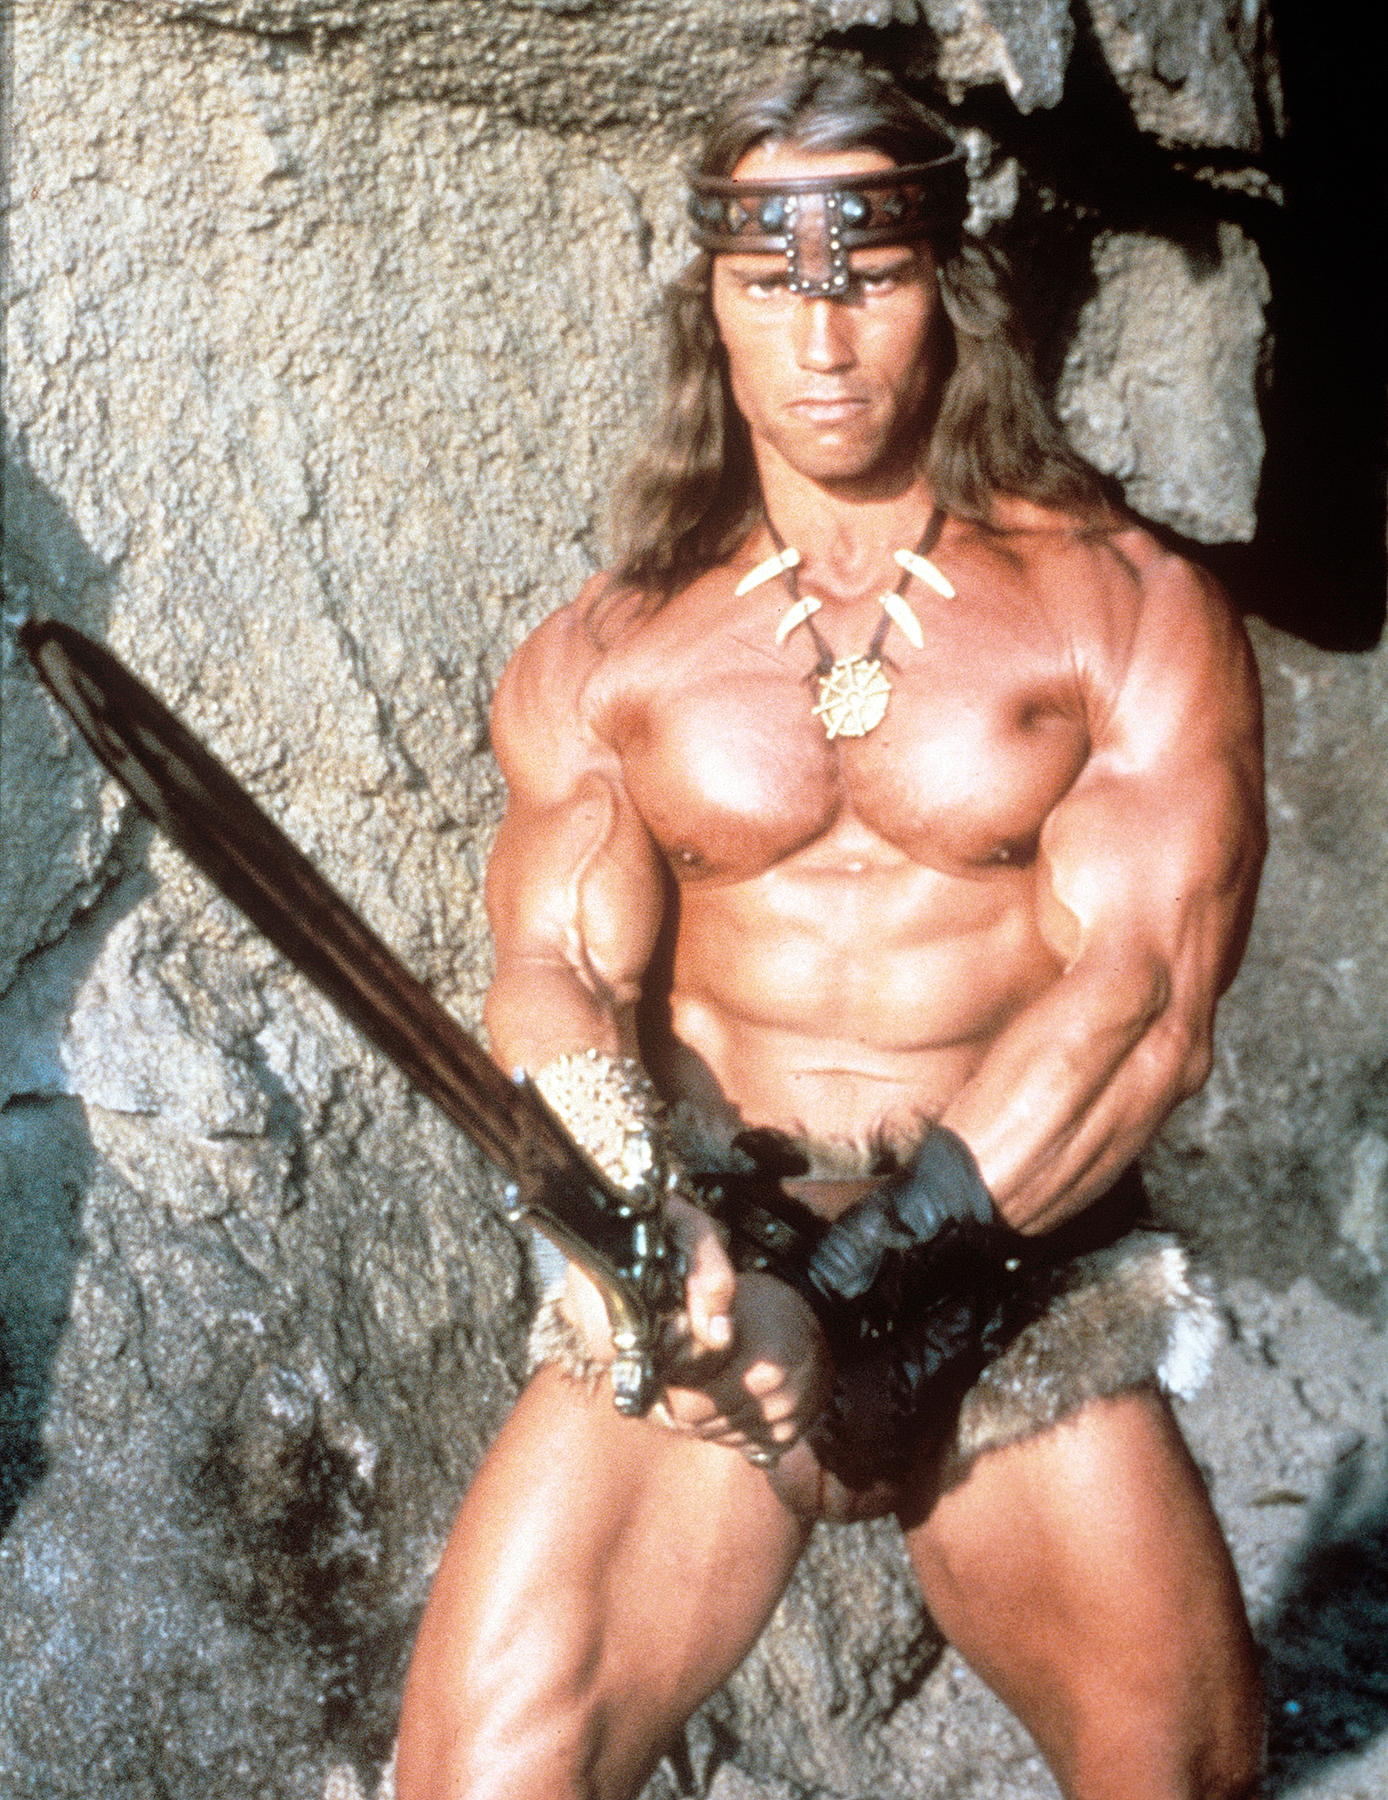 Arnold Schwarzenegger as Conan the Barbarian in 1982